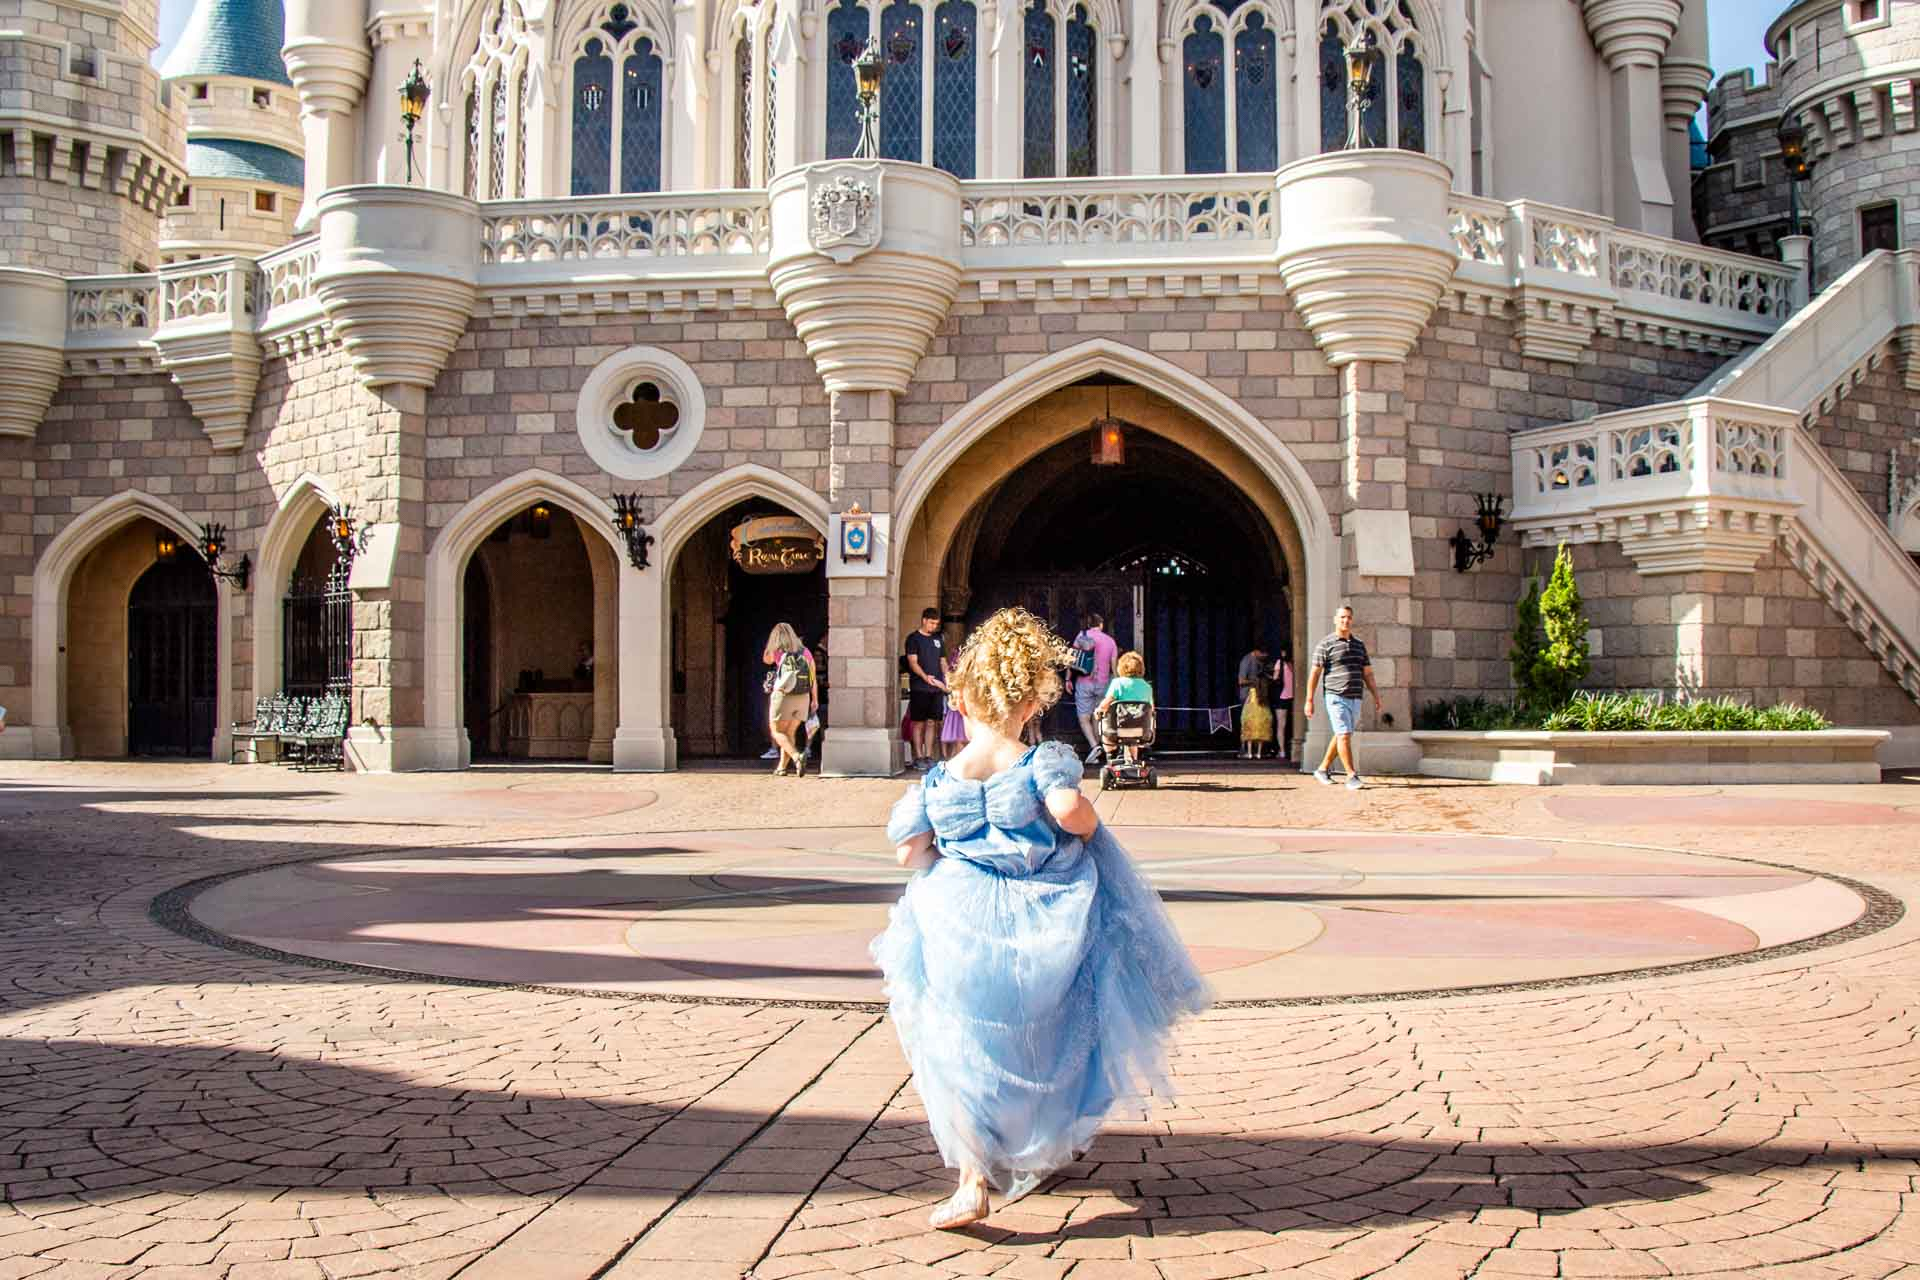 best princess experiences for 5 year old girl - walt disney world cinderella royal table